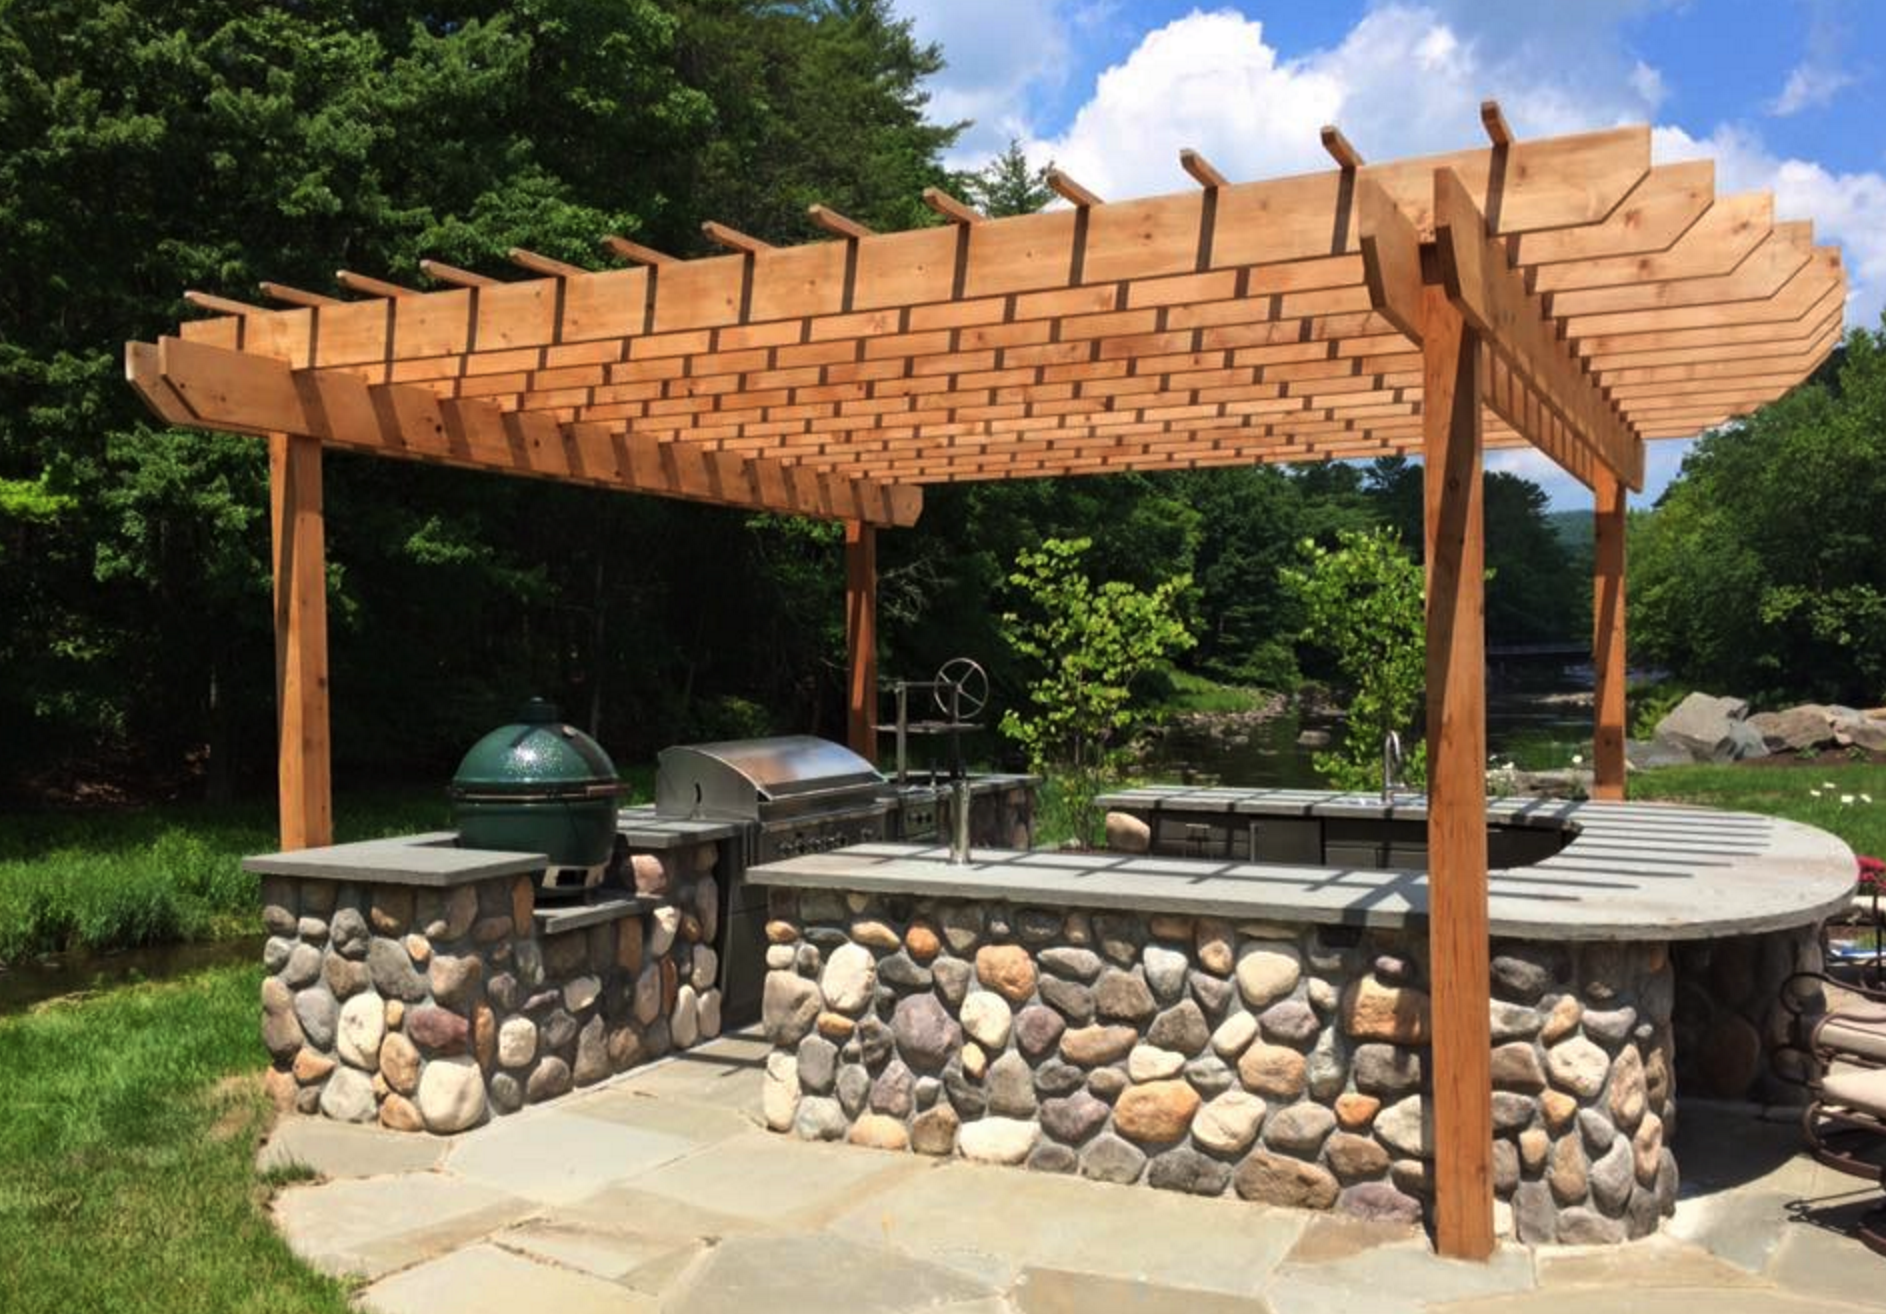 Patio in Bethel NY - pergola and outdoor kitchen - landscaping in Bethel, New York